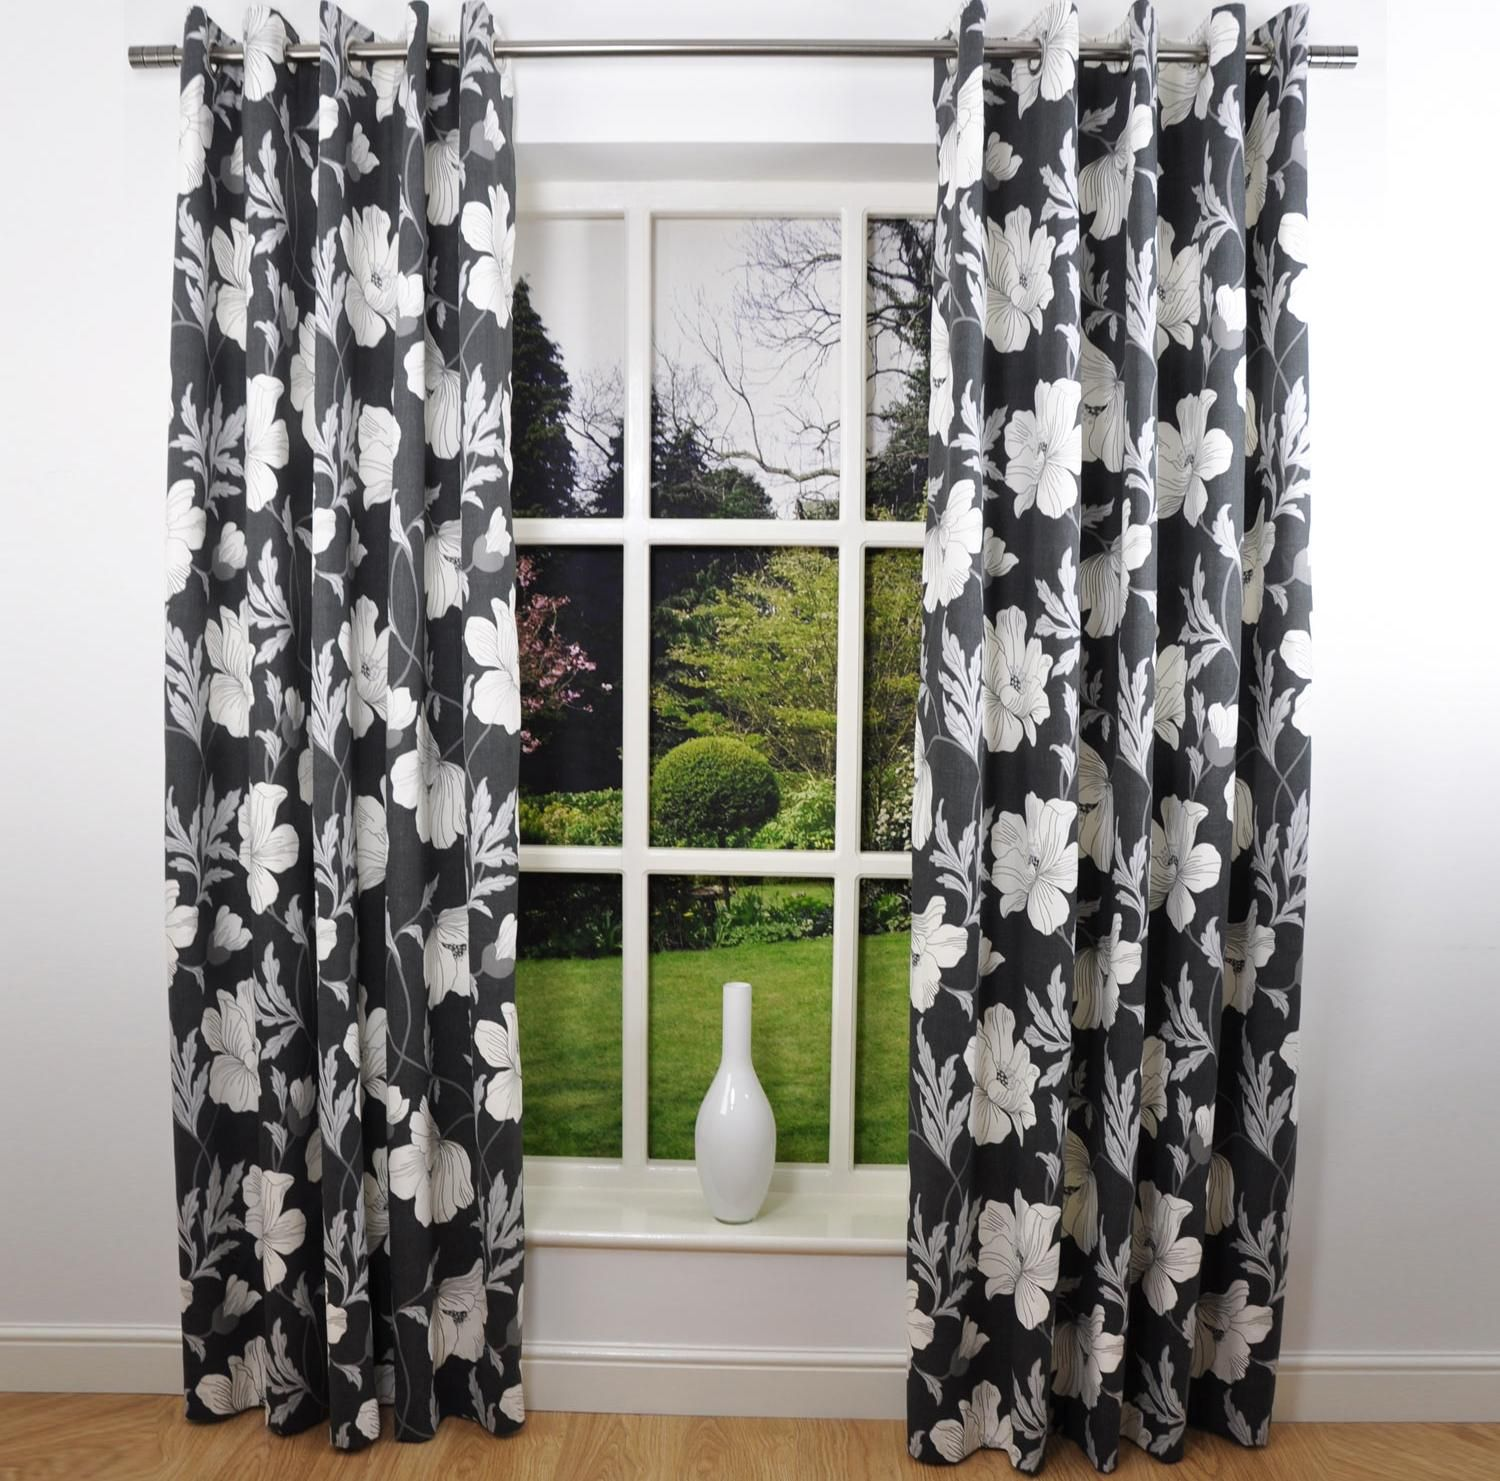 Interior Design Flower Patterned Black And White Curtain Girlly